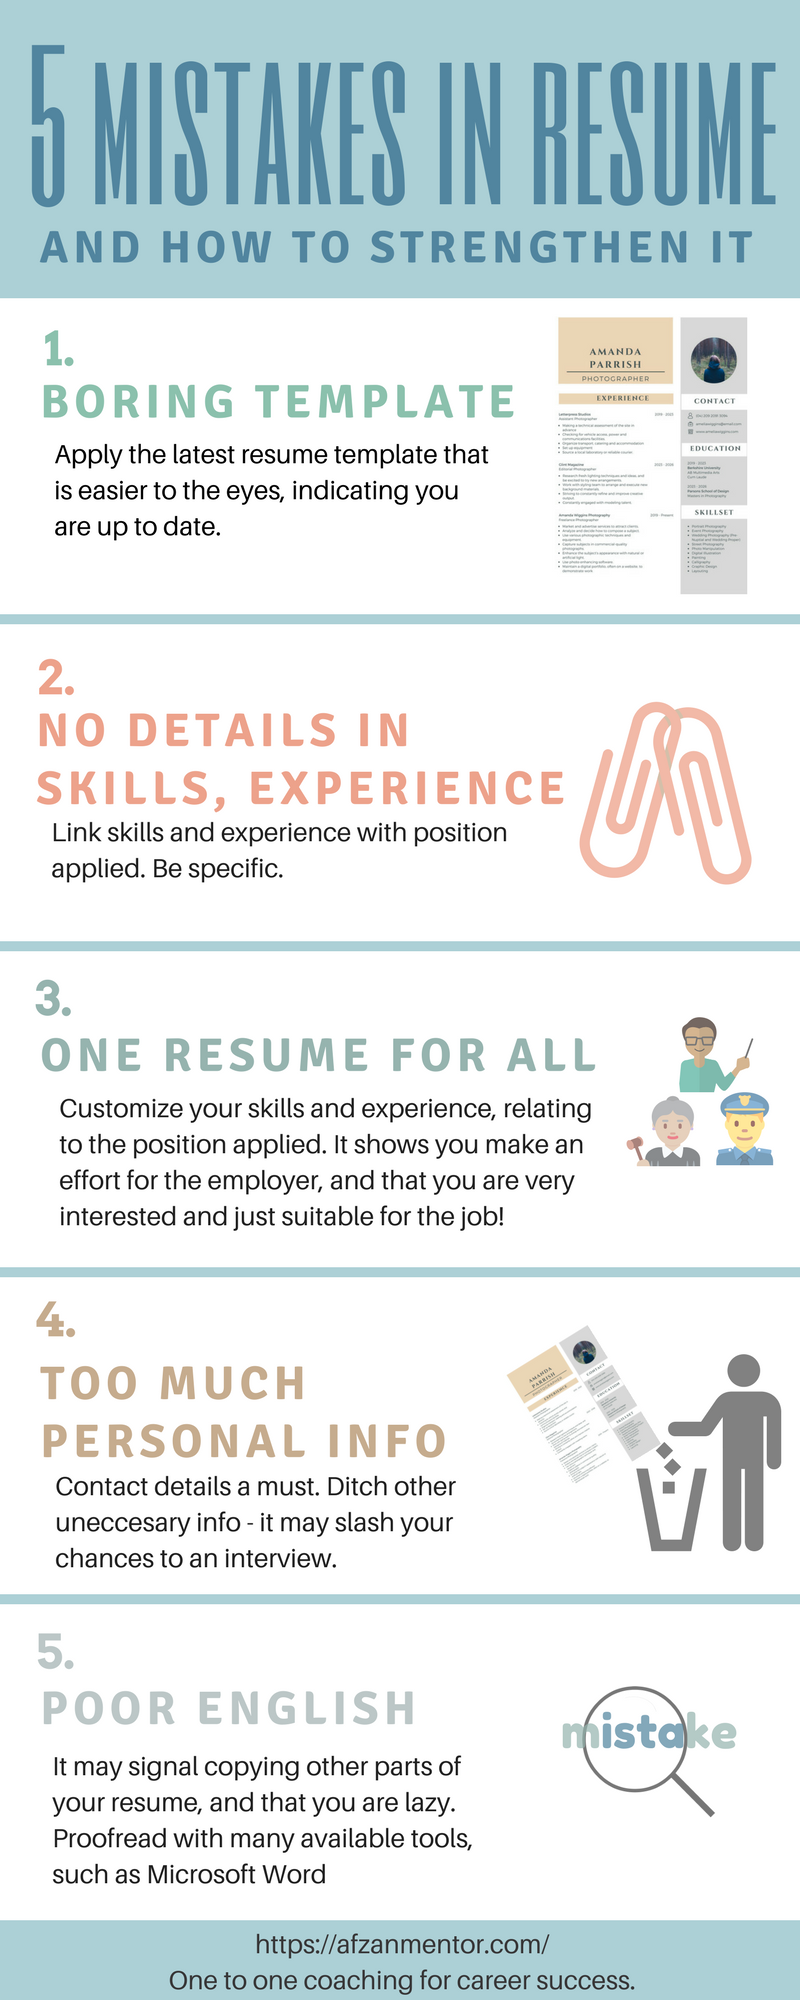 5 mistakes in resumes that slash your chances to an interview and